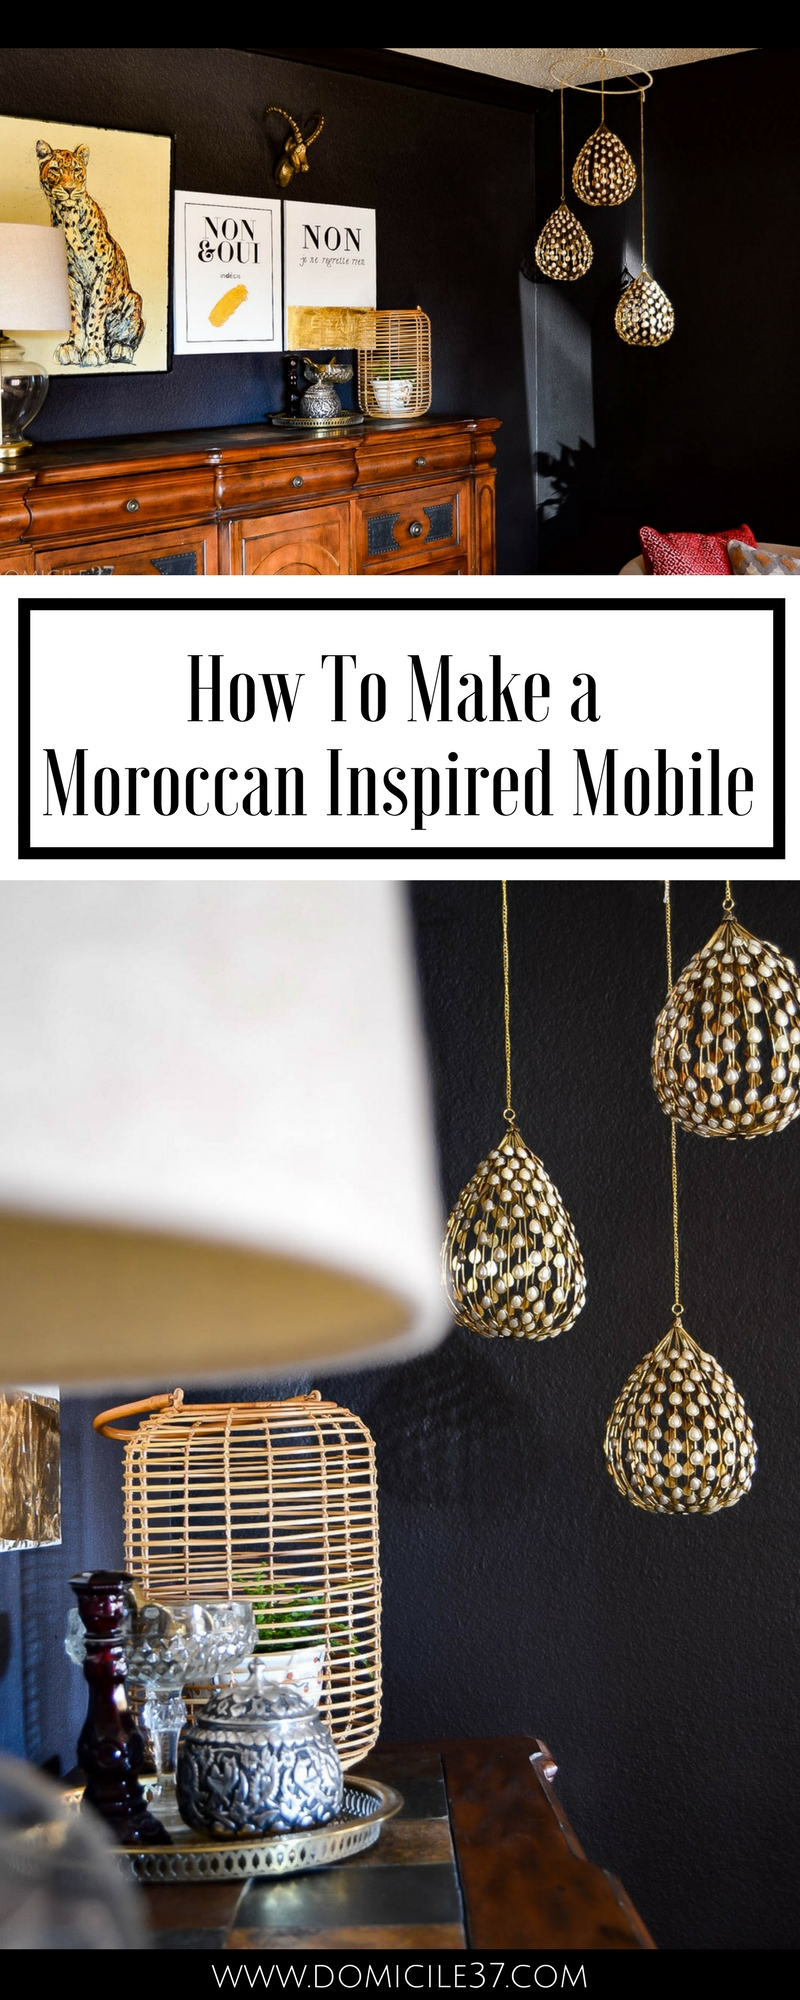 How to make a Moroccan inspired mobile | Moroccan decor | Global home decor | What to do with ornaments | Boho style decor